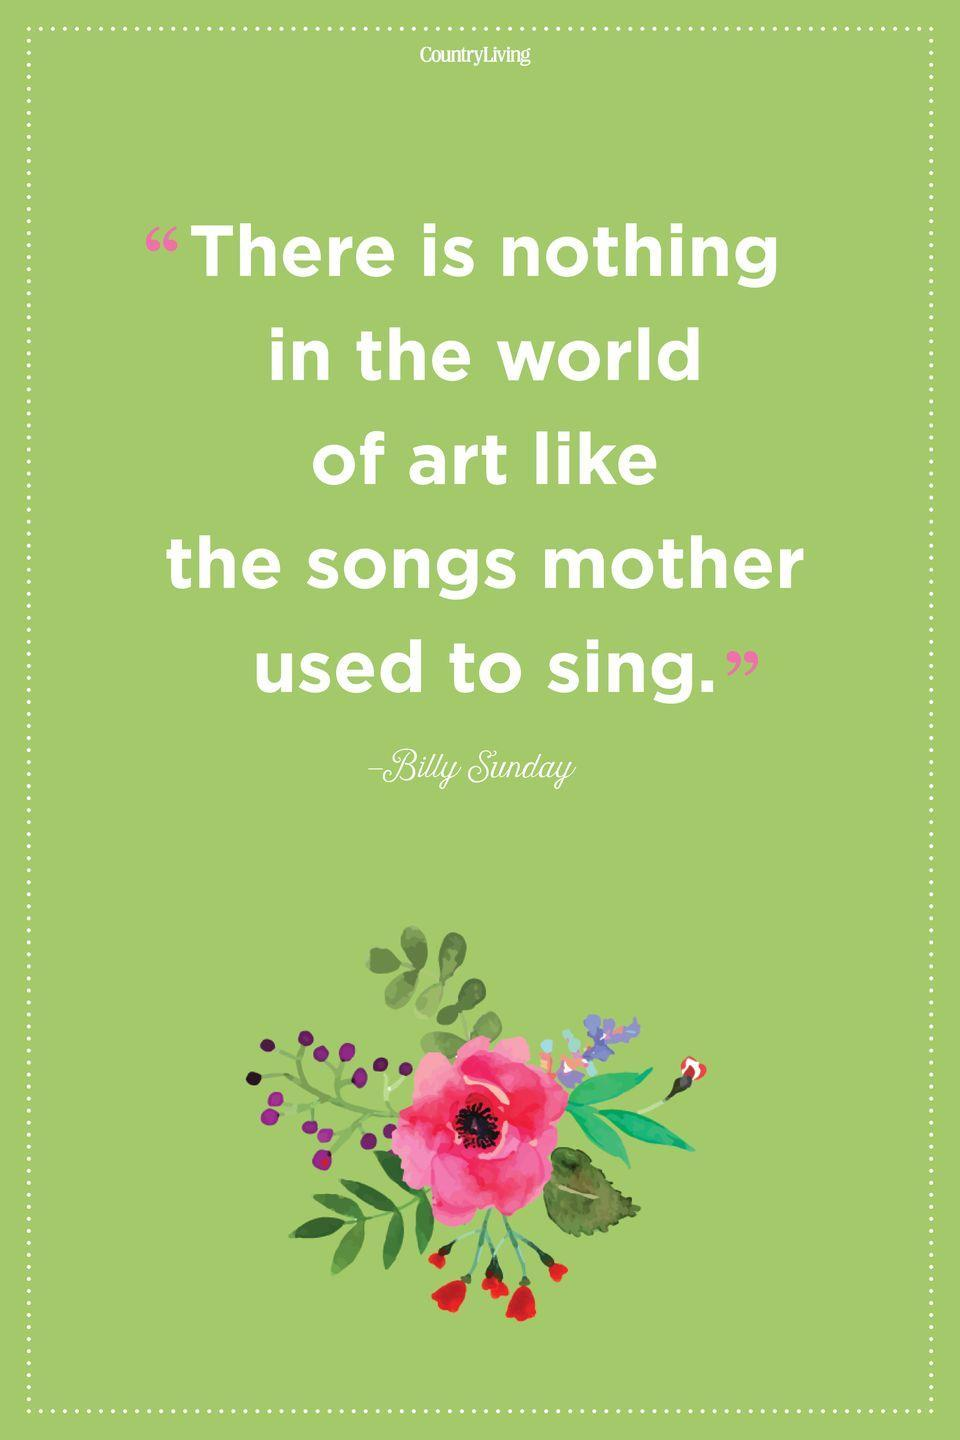 "<p>""There is nothing in the world of art like the songs mother used to sing.""</p><p><strong>RELATED:</strong> <a href=""https://www.countryliving.com/life/g18368675/flower-quotes/"" rel=""nofollow noopener"" target=""_blank"" data-ylk=""slk:Flower Quotes to Inspire New Beginnings"" class=""link rapid-noclick-resp"">Flower Quotes to Inspire New Beginnings</a><br></p>"